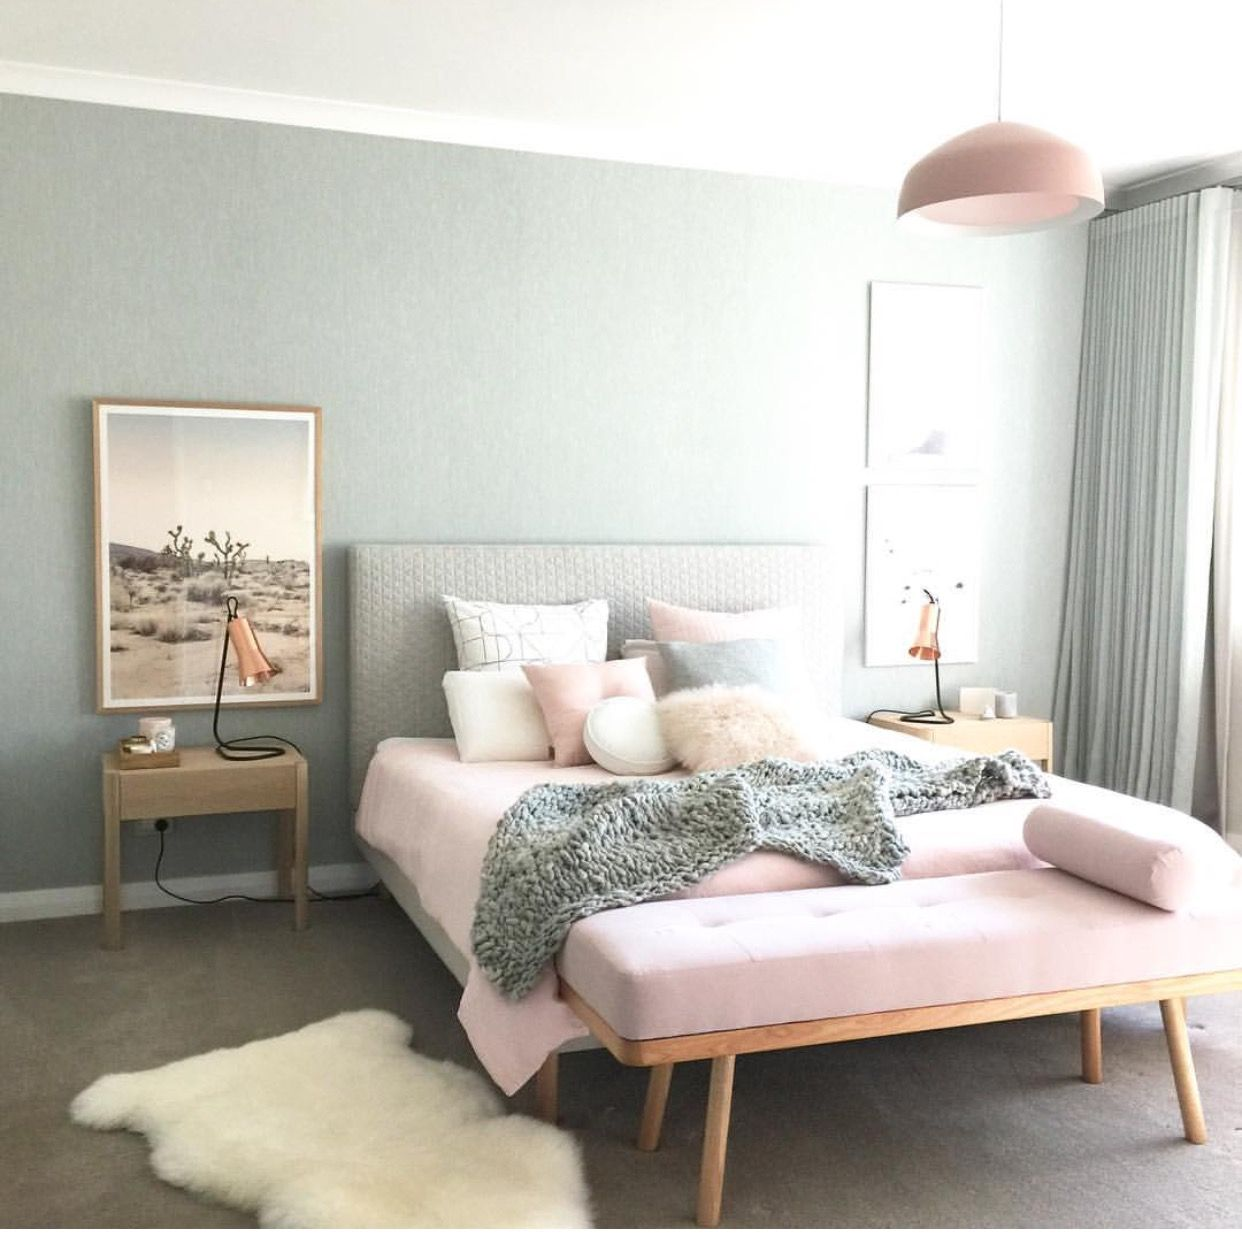 Interior Designs For Bedrooms Awesome Du Blush Dans La Chambre  Pastel Bedroom Pastels And Bedrooms Inspiration